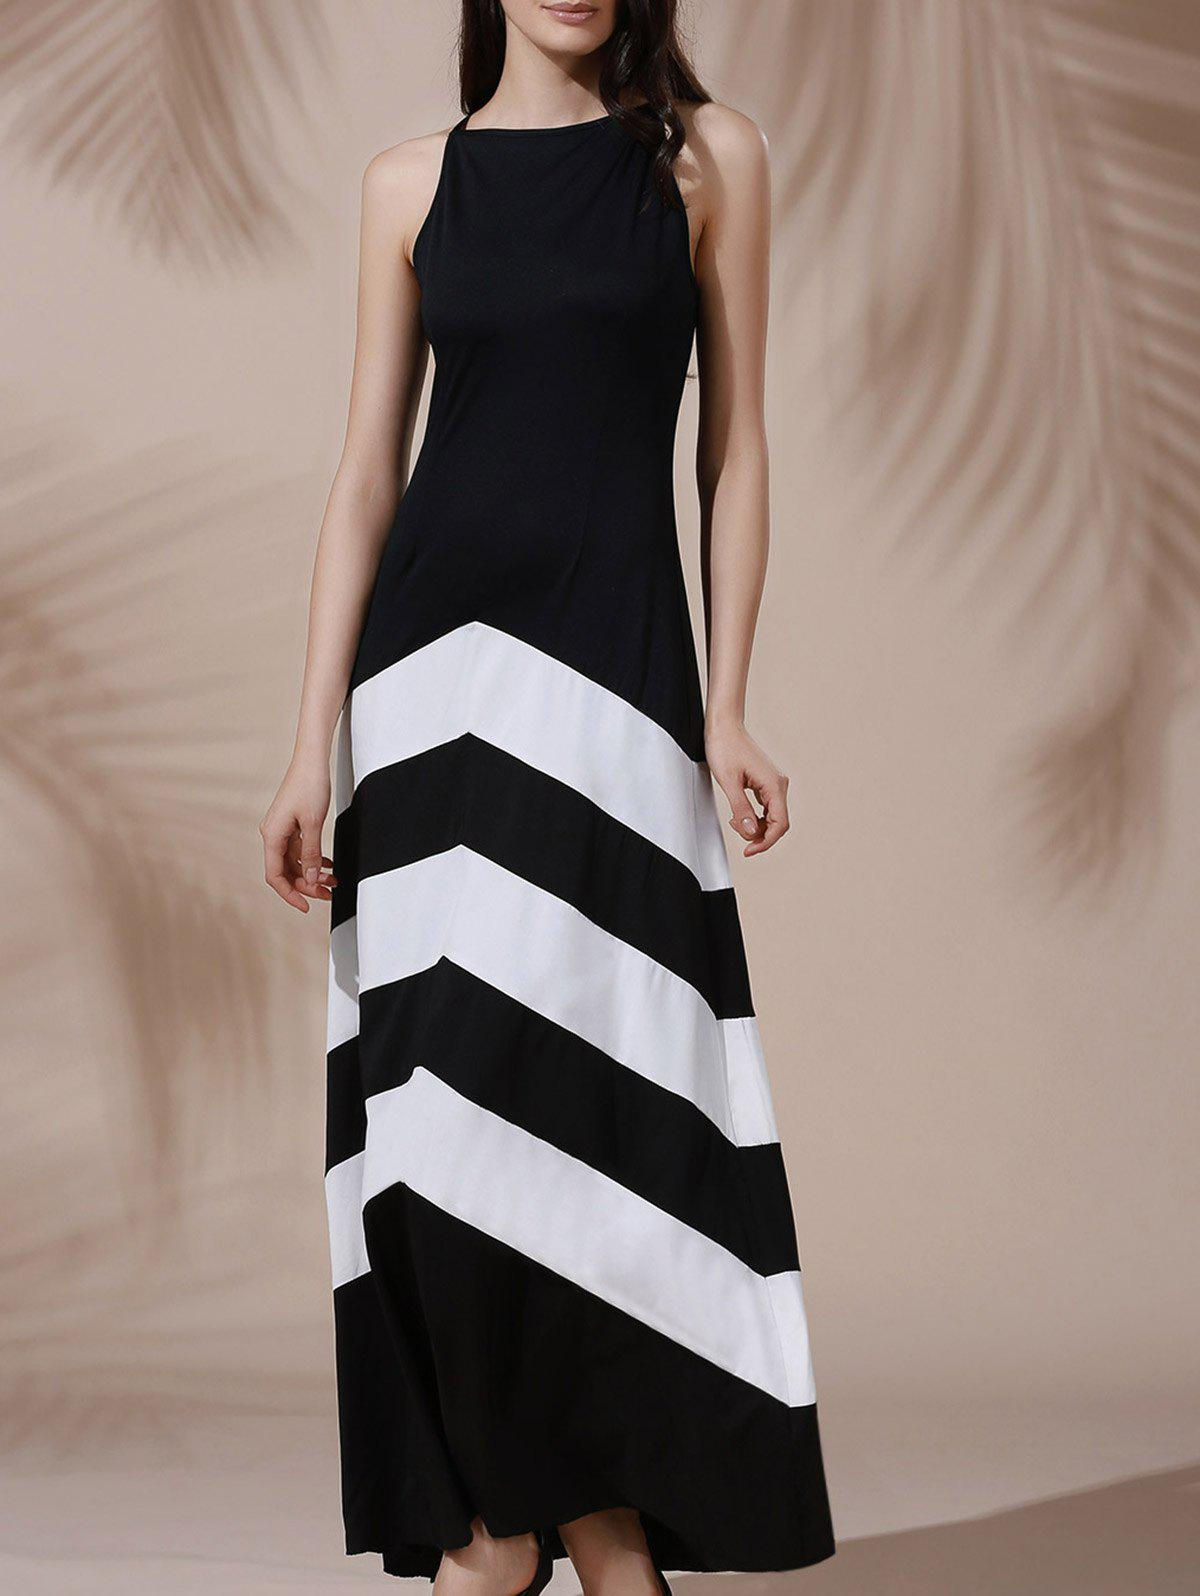 Chic Halter Sleeveless Color Block Maxi Prom Evening Dress